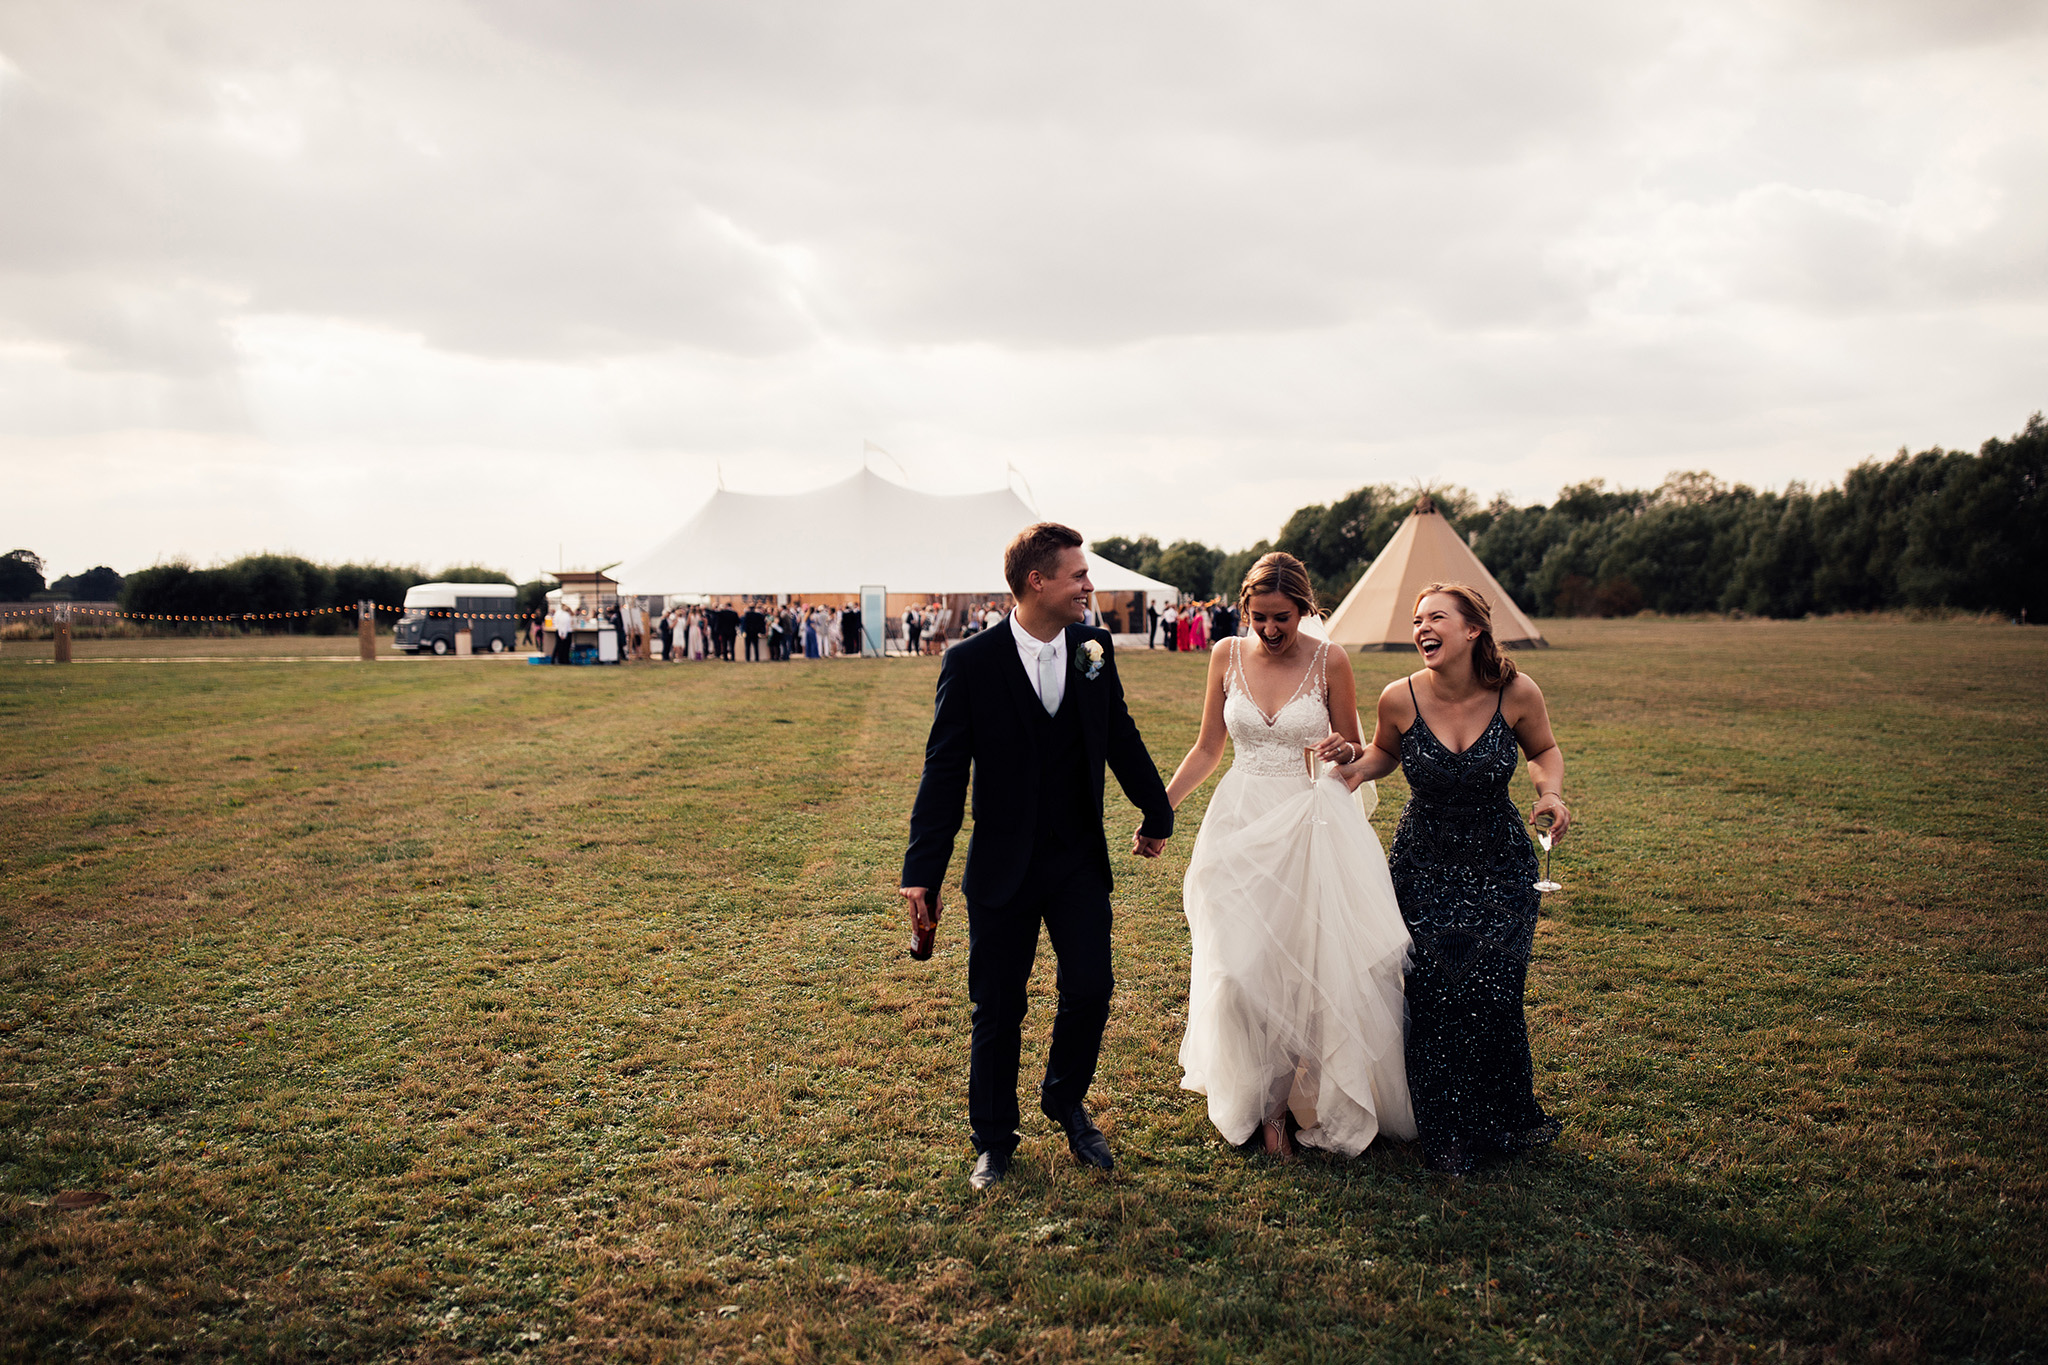 PapaKåta Sperry Wedding in Oxfordshire by Harry Michael Photography- Bridal party style